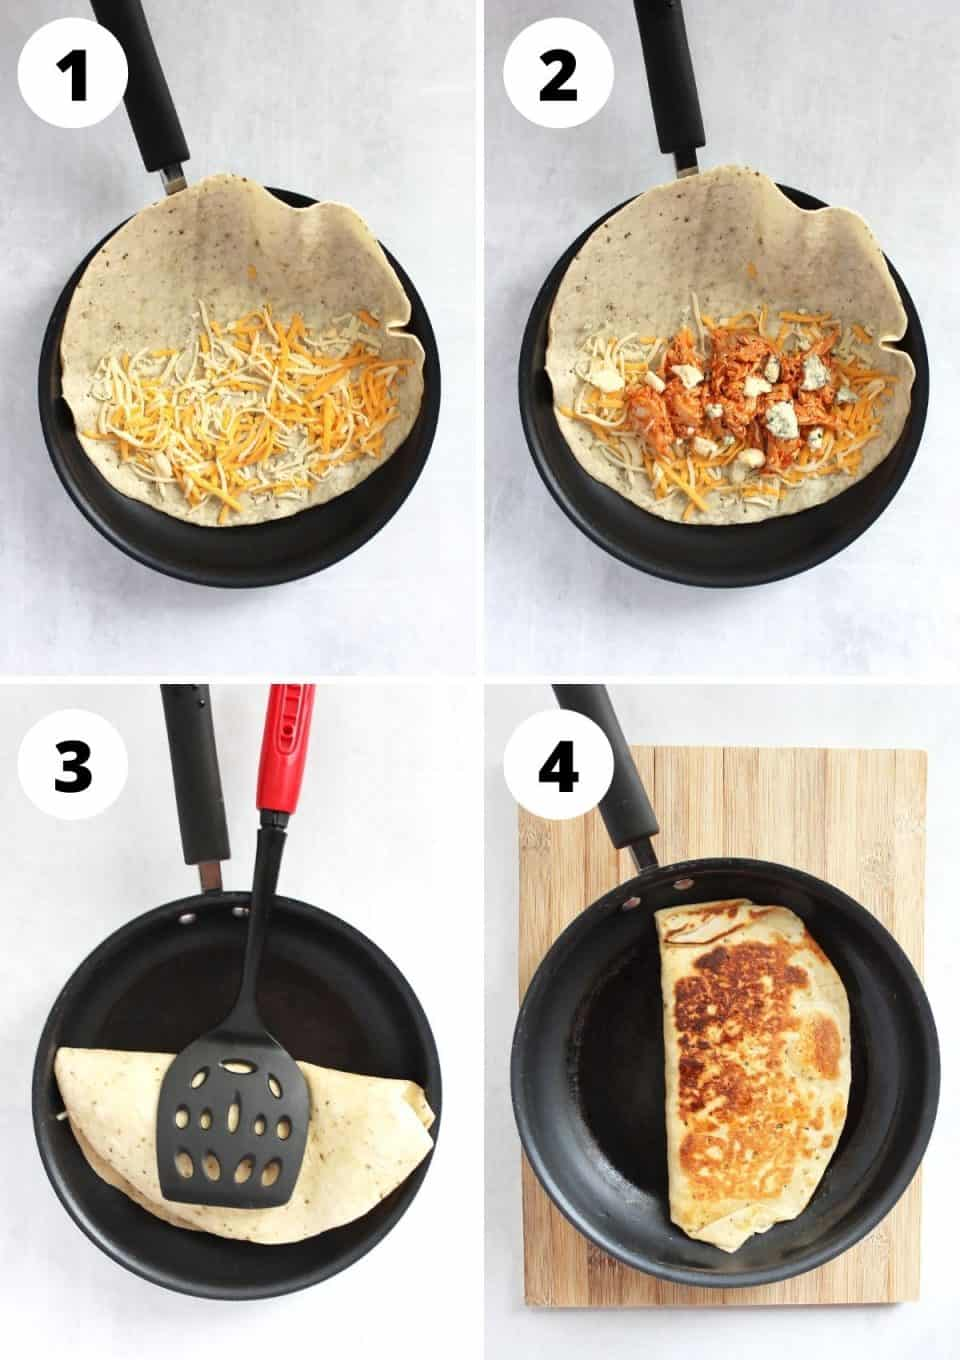 Four step by step photos to show how to make a quesadilla in a skillet.